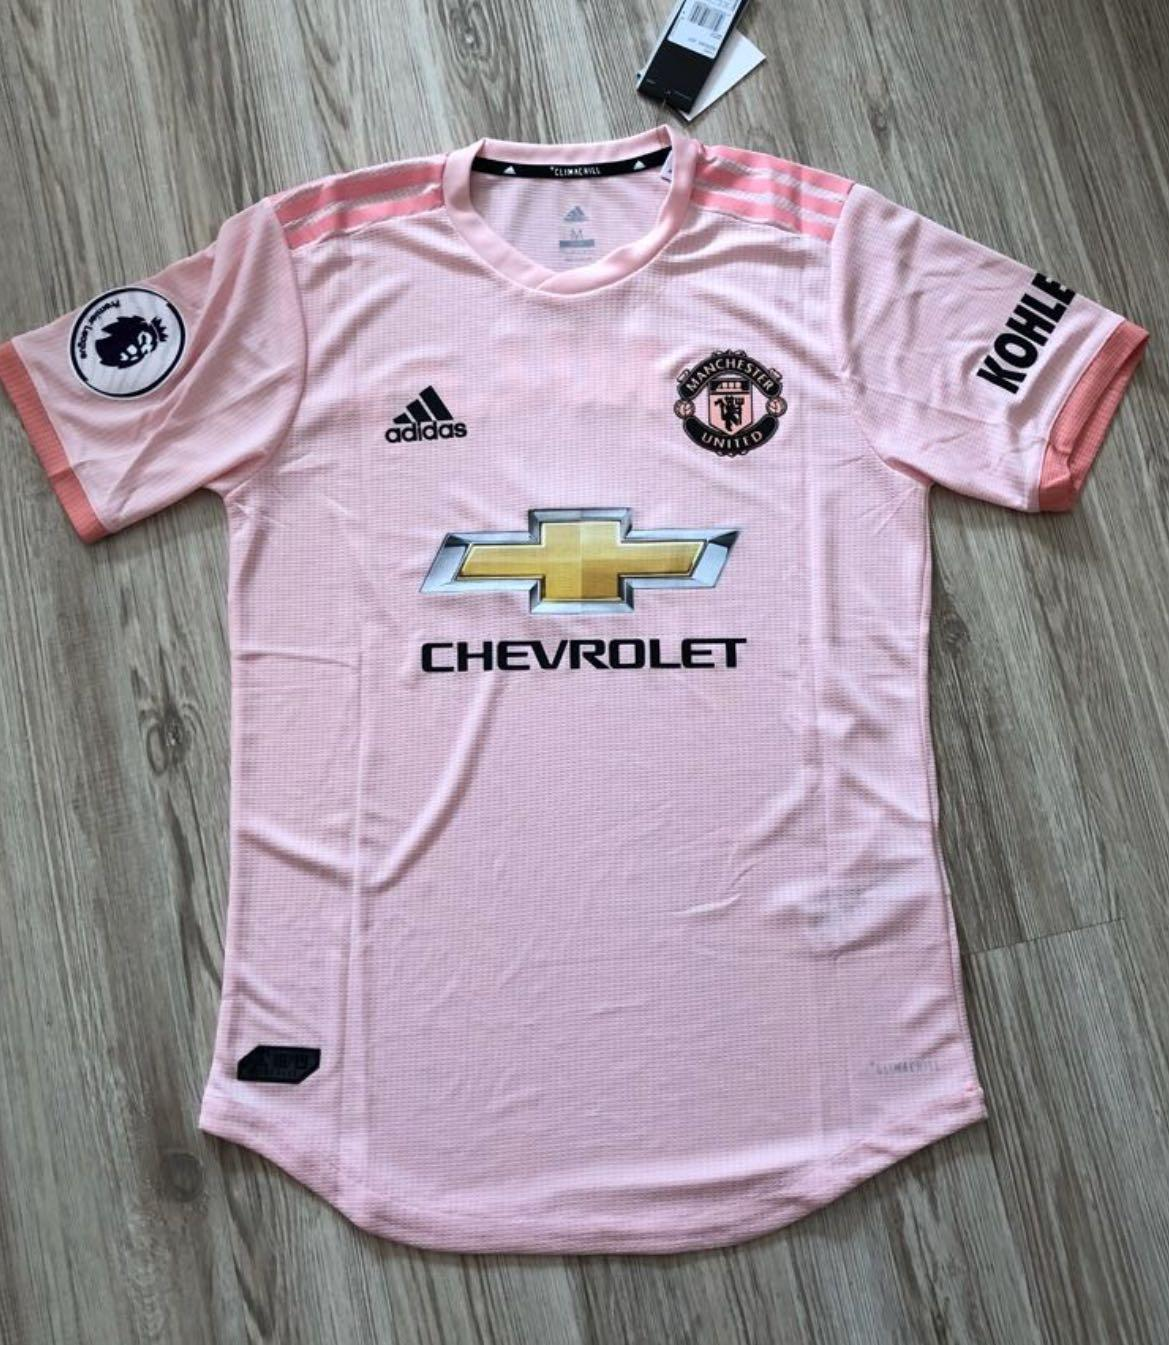 finest selection 672f7 09ca2 ❗️SALE❗️ Manchester United 18/19 away kit Manchester ...